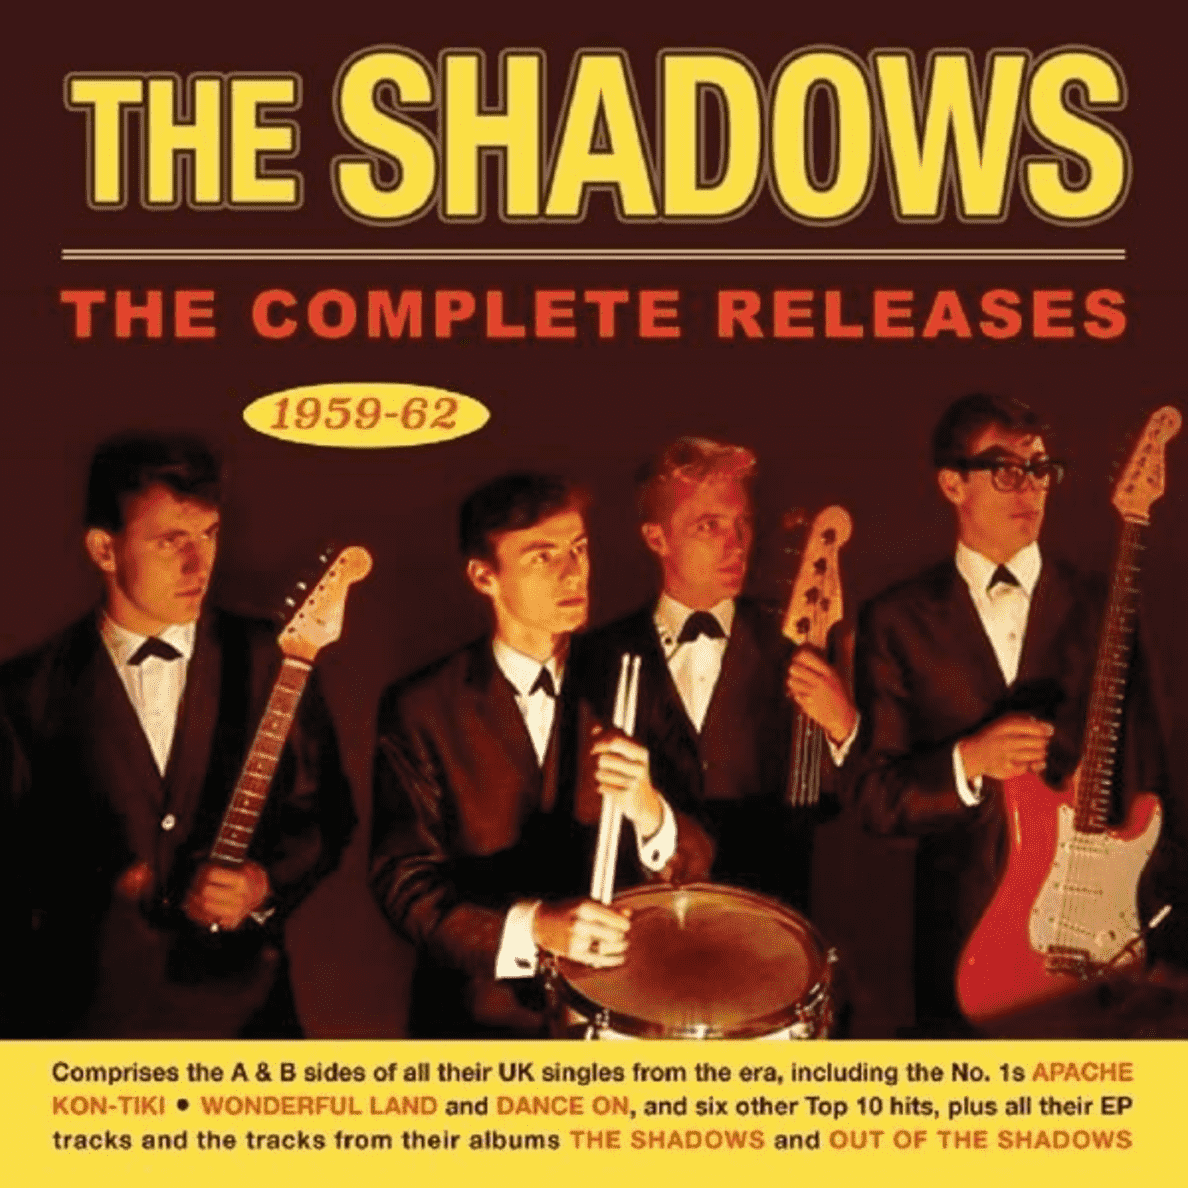 Complete Releases 1959-62 The Shadows auf CD